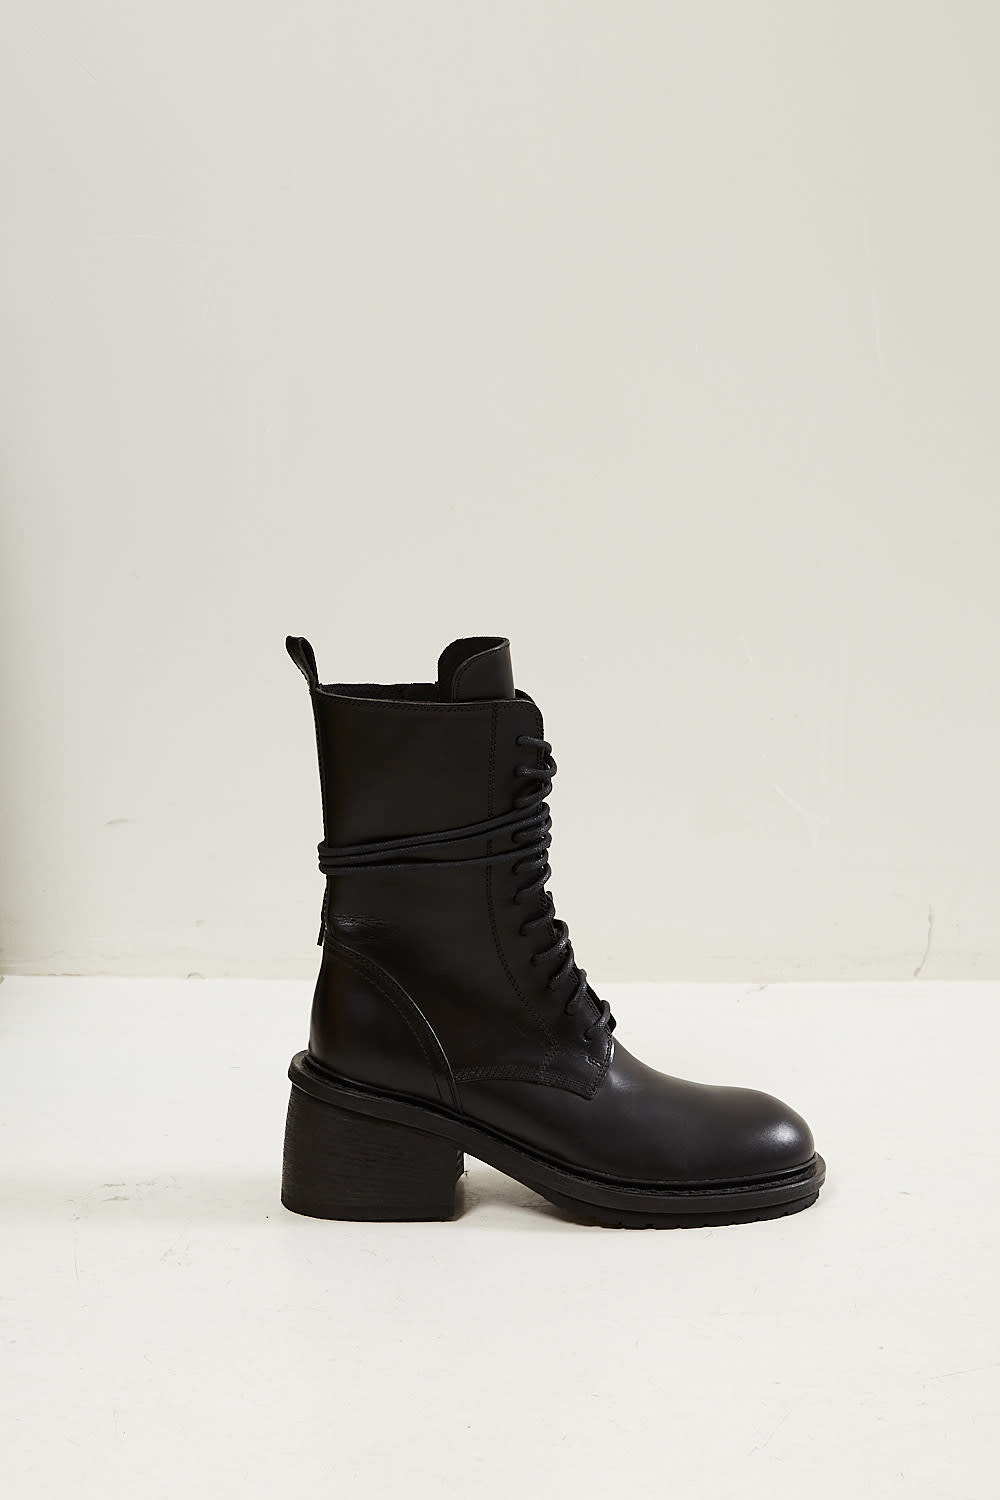 Ann Demeulemeester - Tucson lace up leather boots